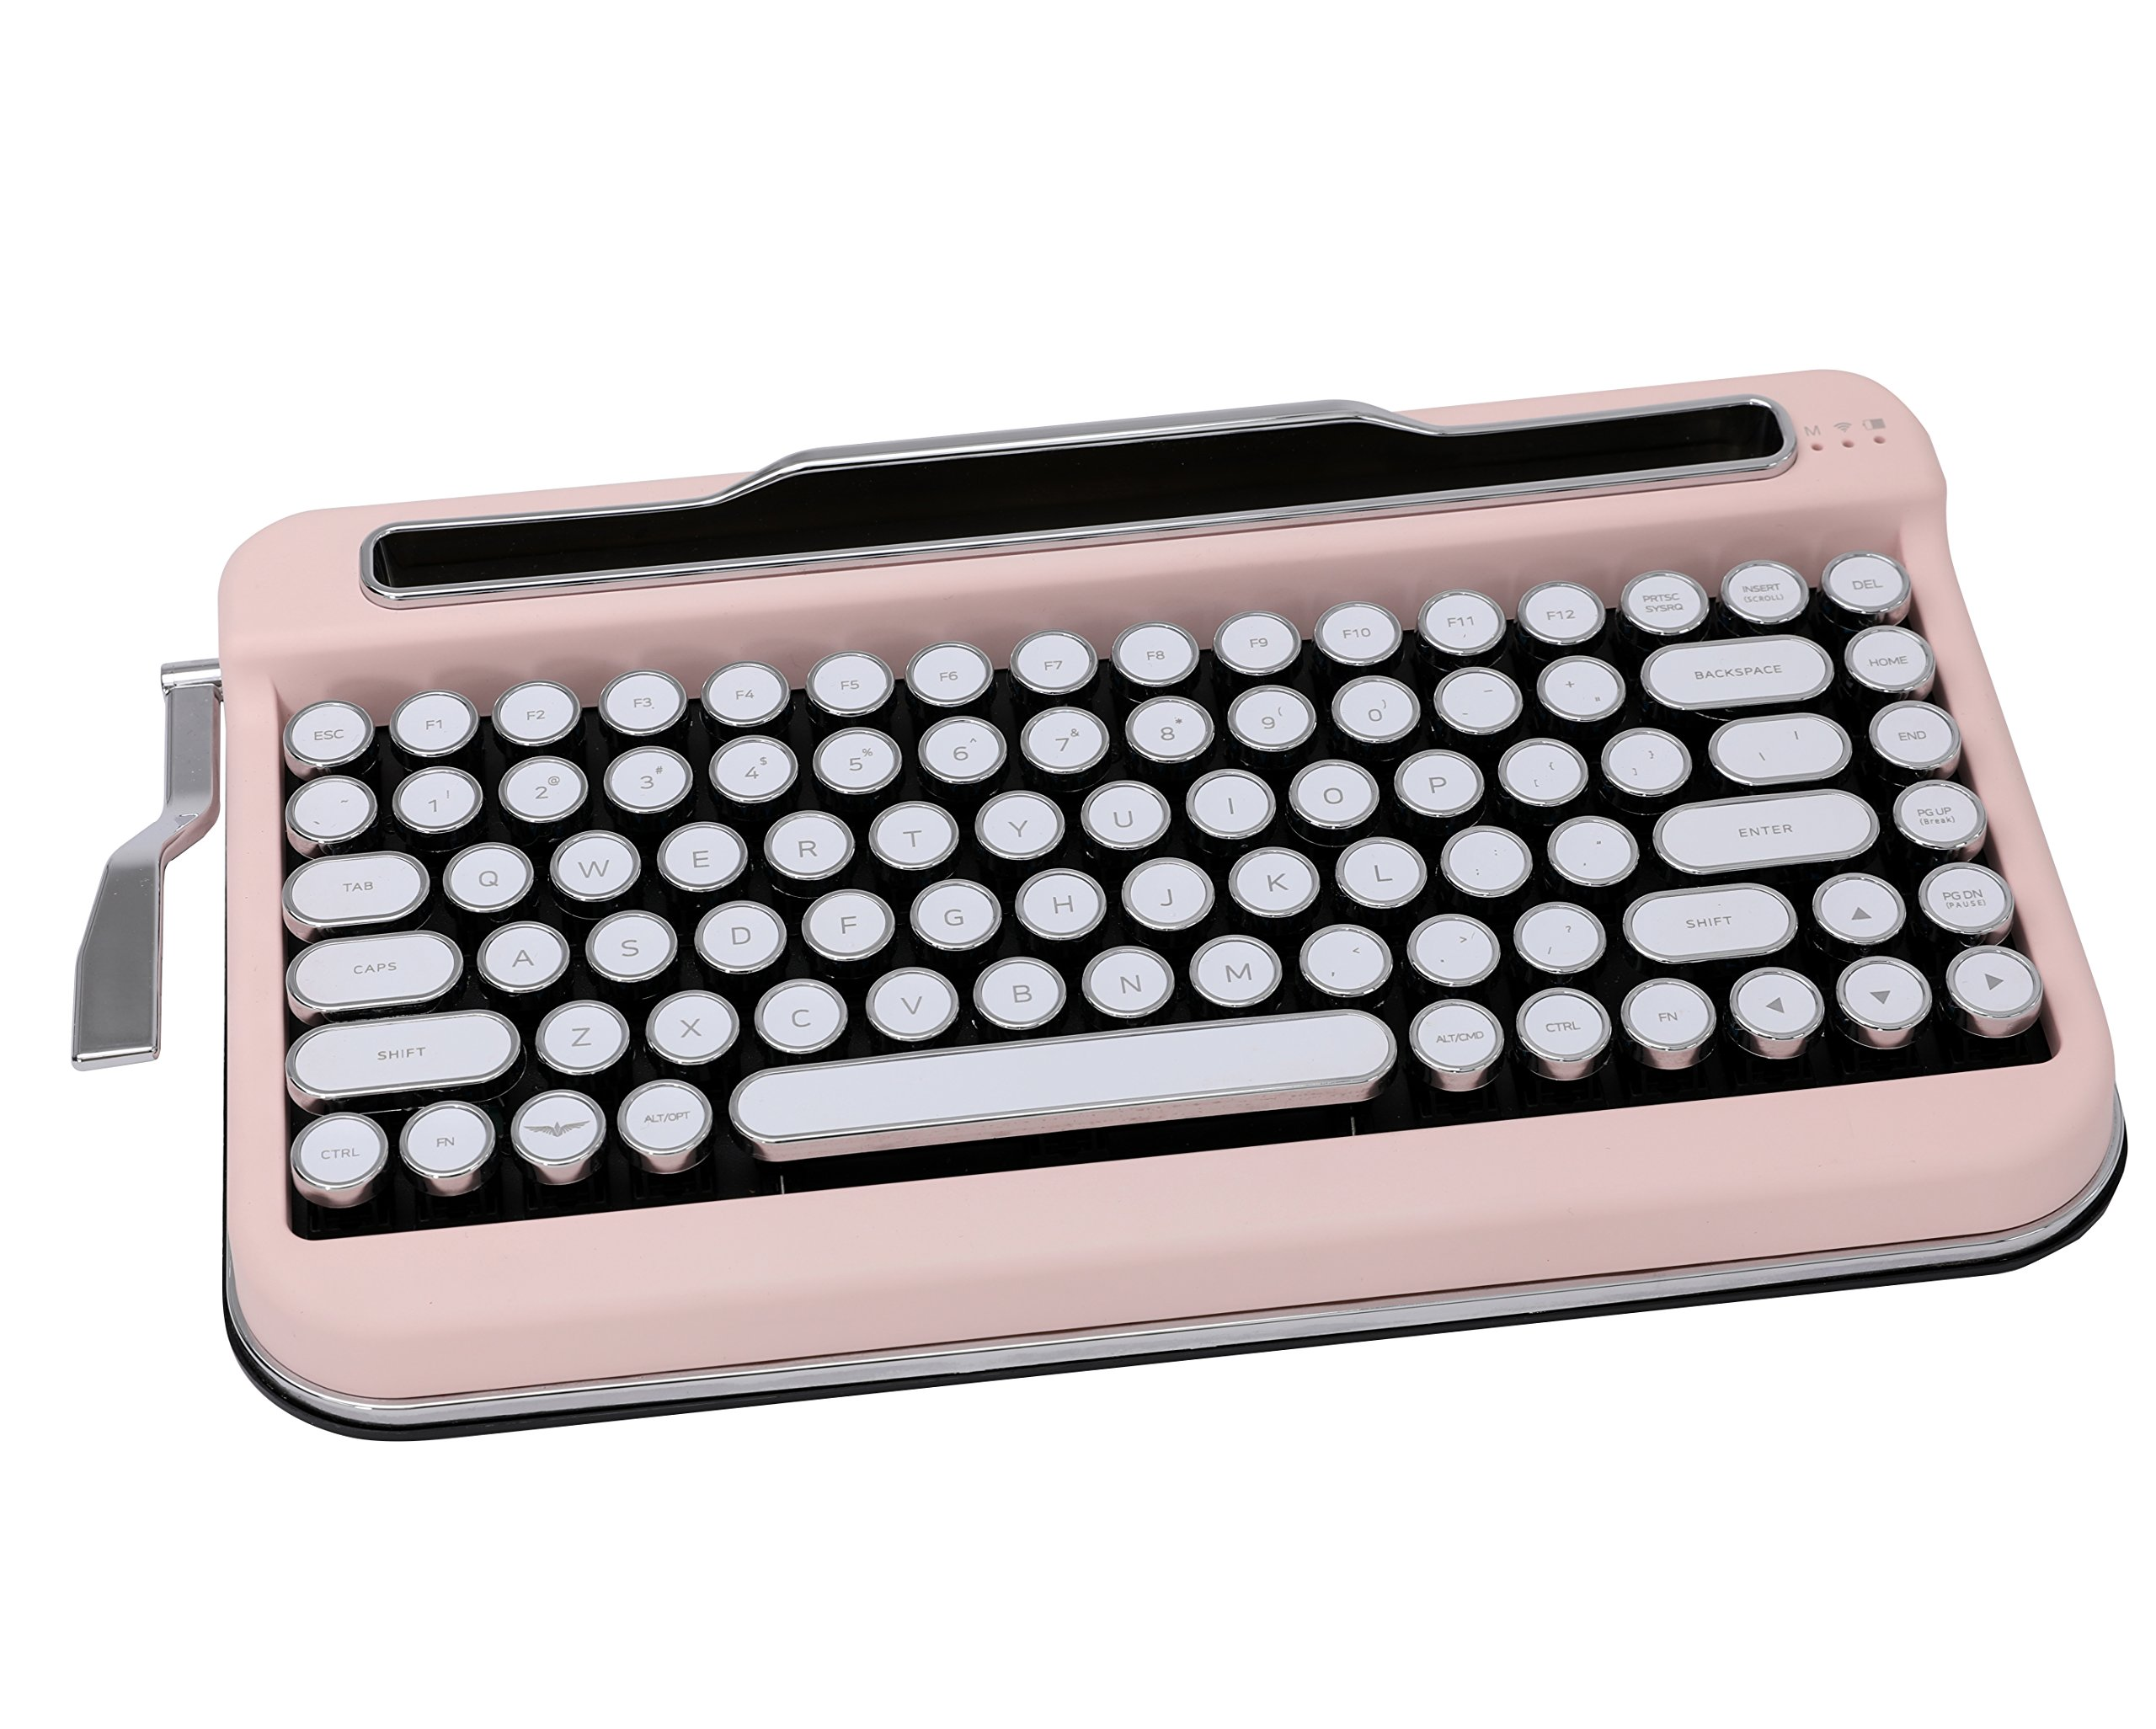 Penna Bluetooth Keyboard with White Chrome Keycap(US Language) (Switch-Cherry Mx Brown, Baby Pink)